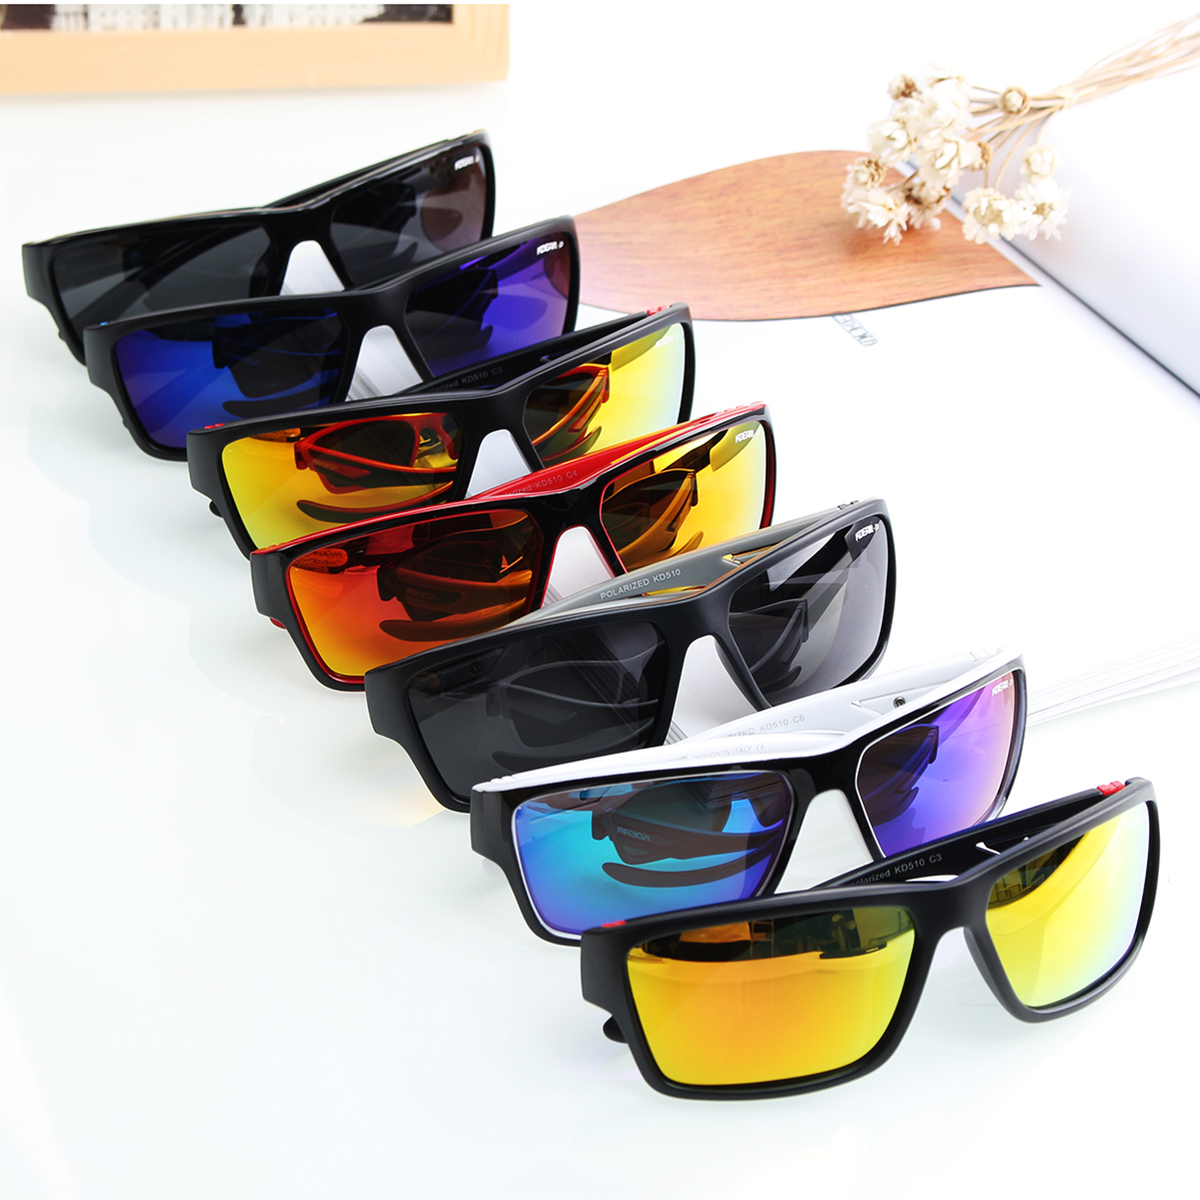 KDEAM KD510 Summer Polarized Sunglasses Men HD Polaroid Lens Exercise Sun Glasses Goggles With Brand Hard Box